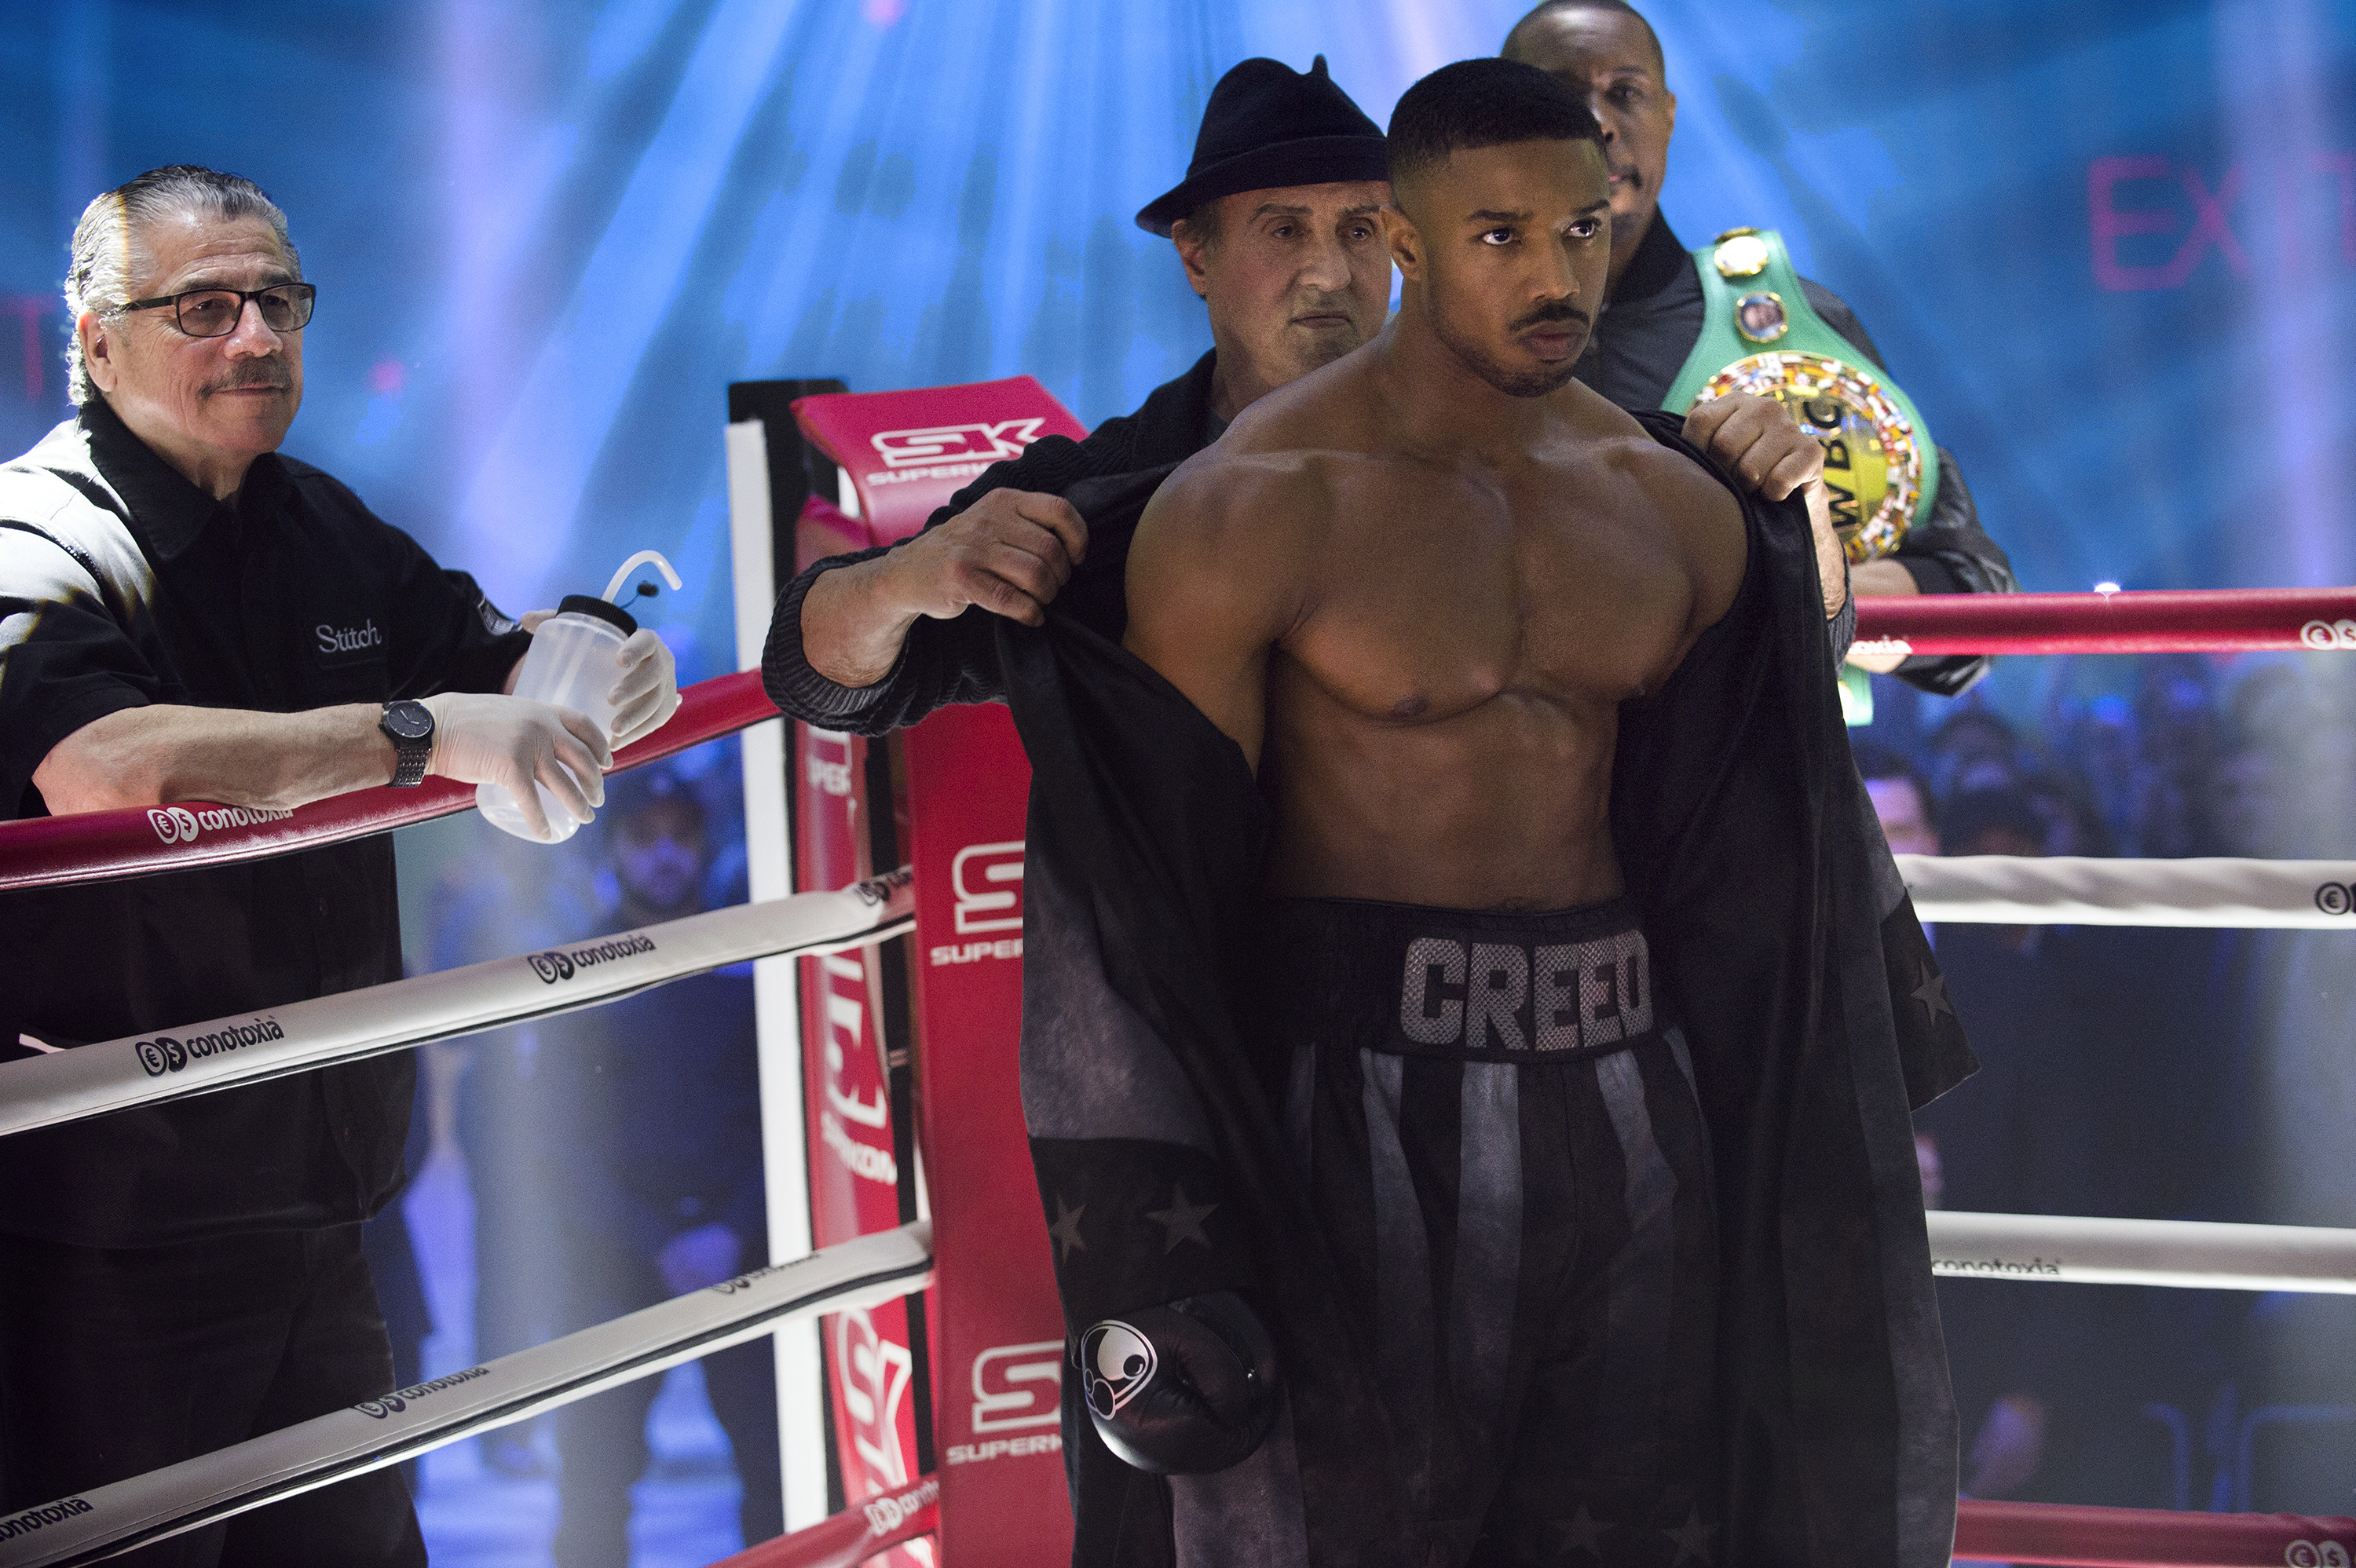 b2cdeae1d59 Creed 2: New Photos Of Michael B. Jordan's Adonis In The Ring